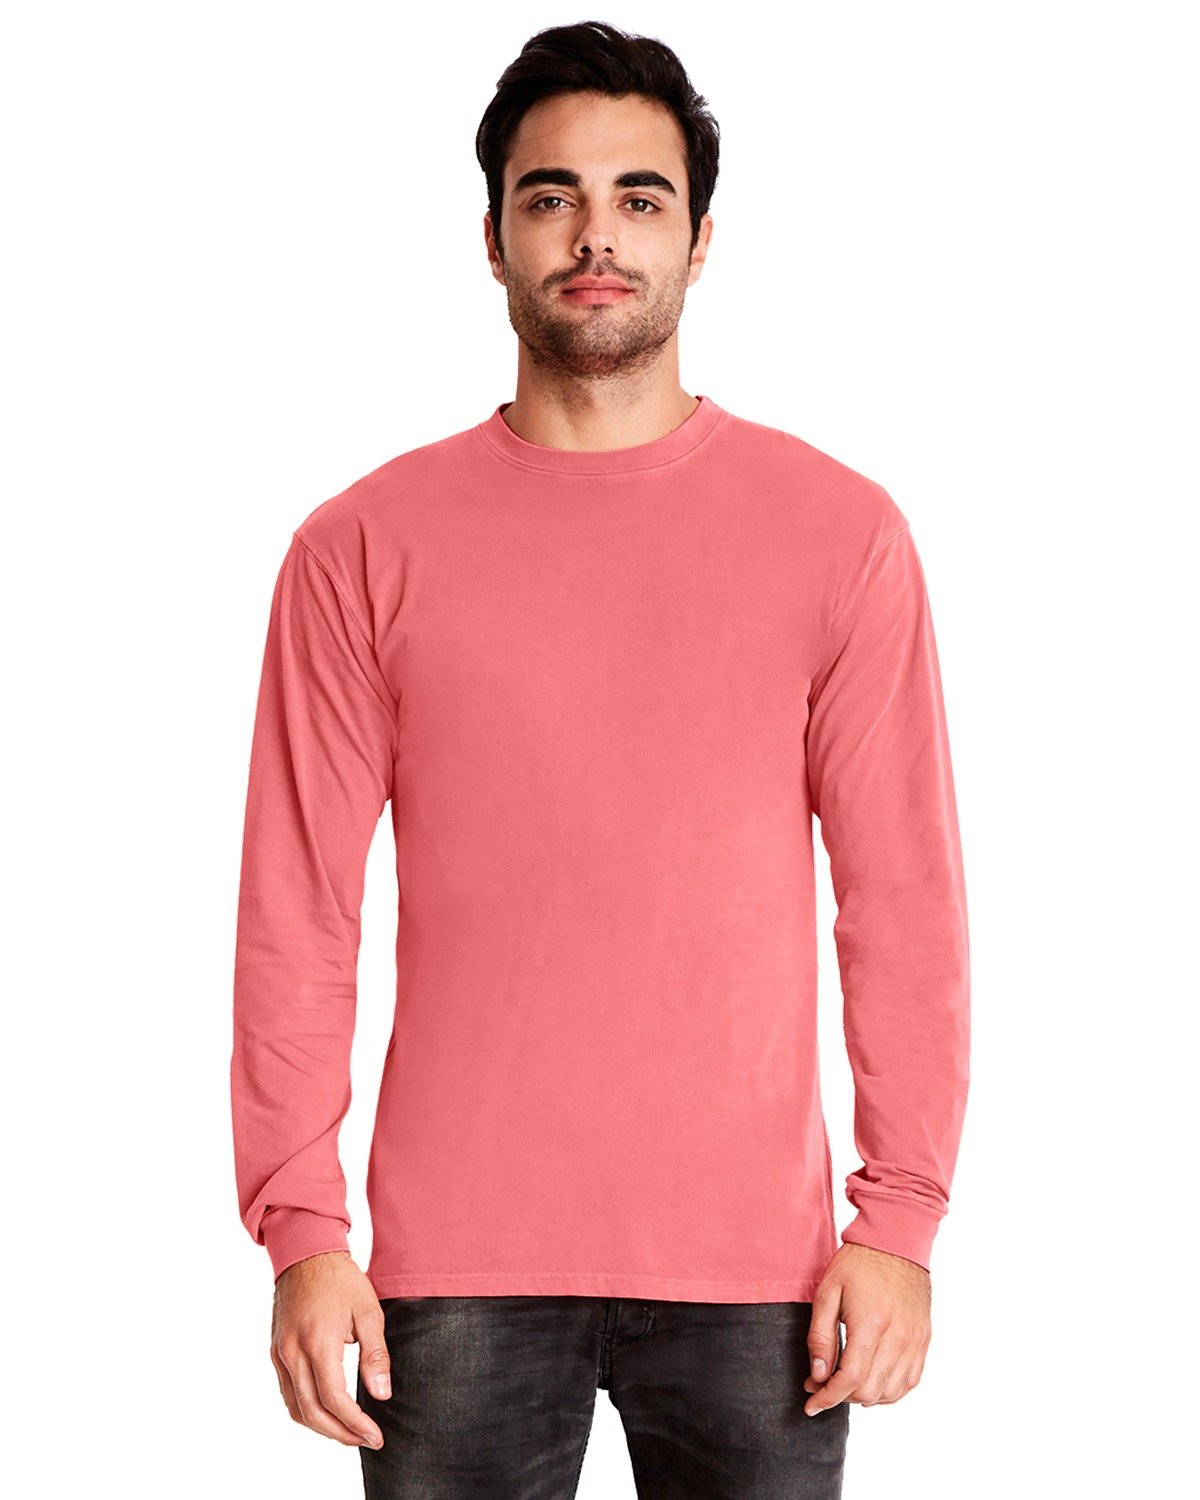 Next Level Adult Inspired Dye Long-Sleeve Crew GUAVA